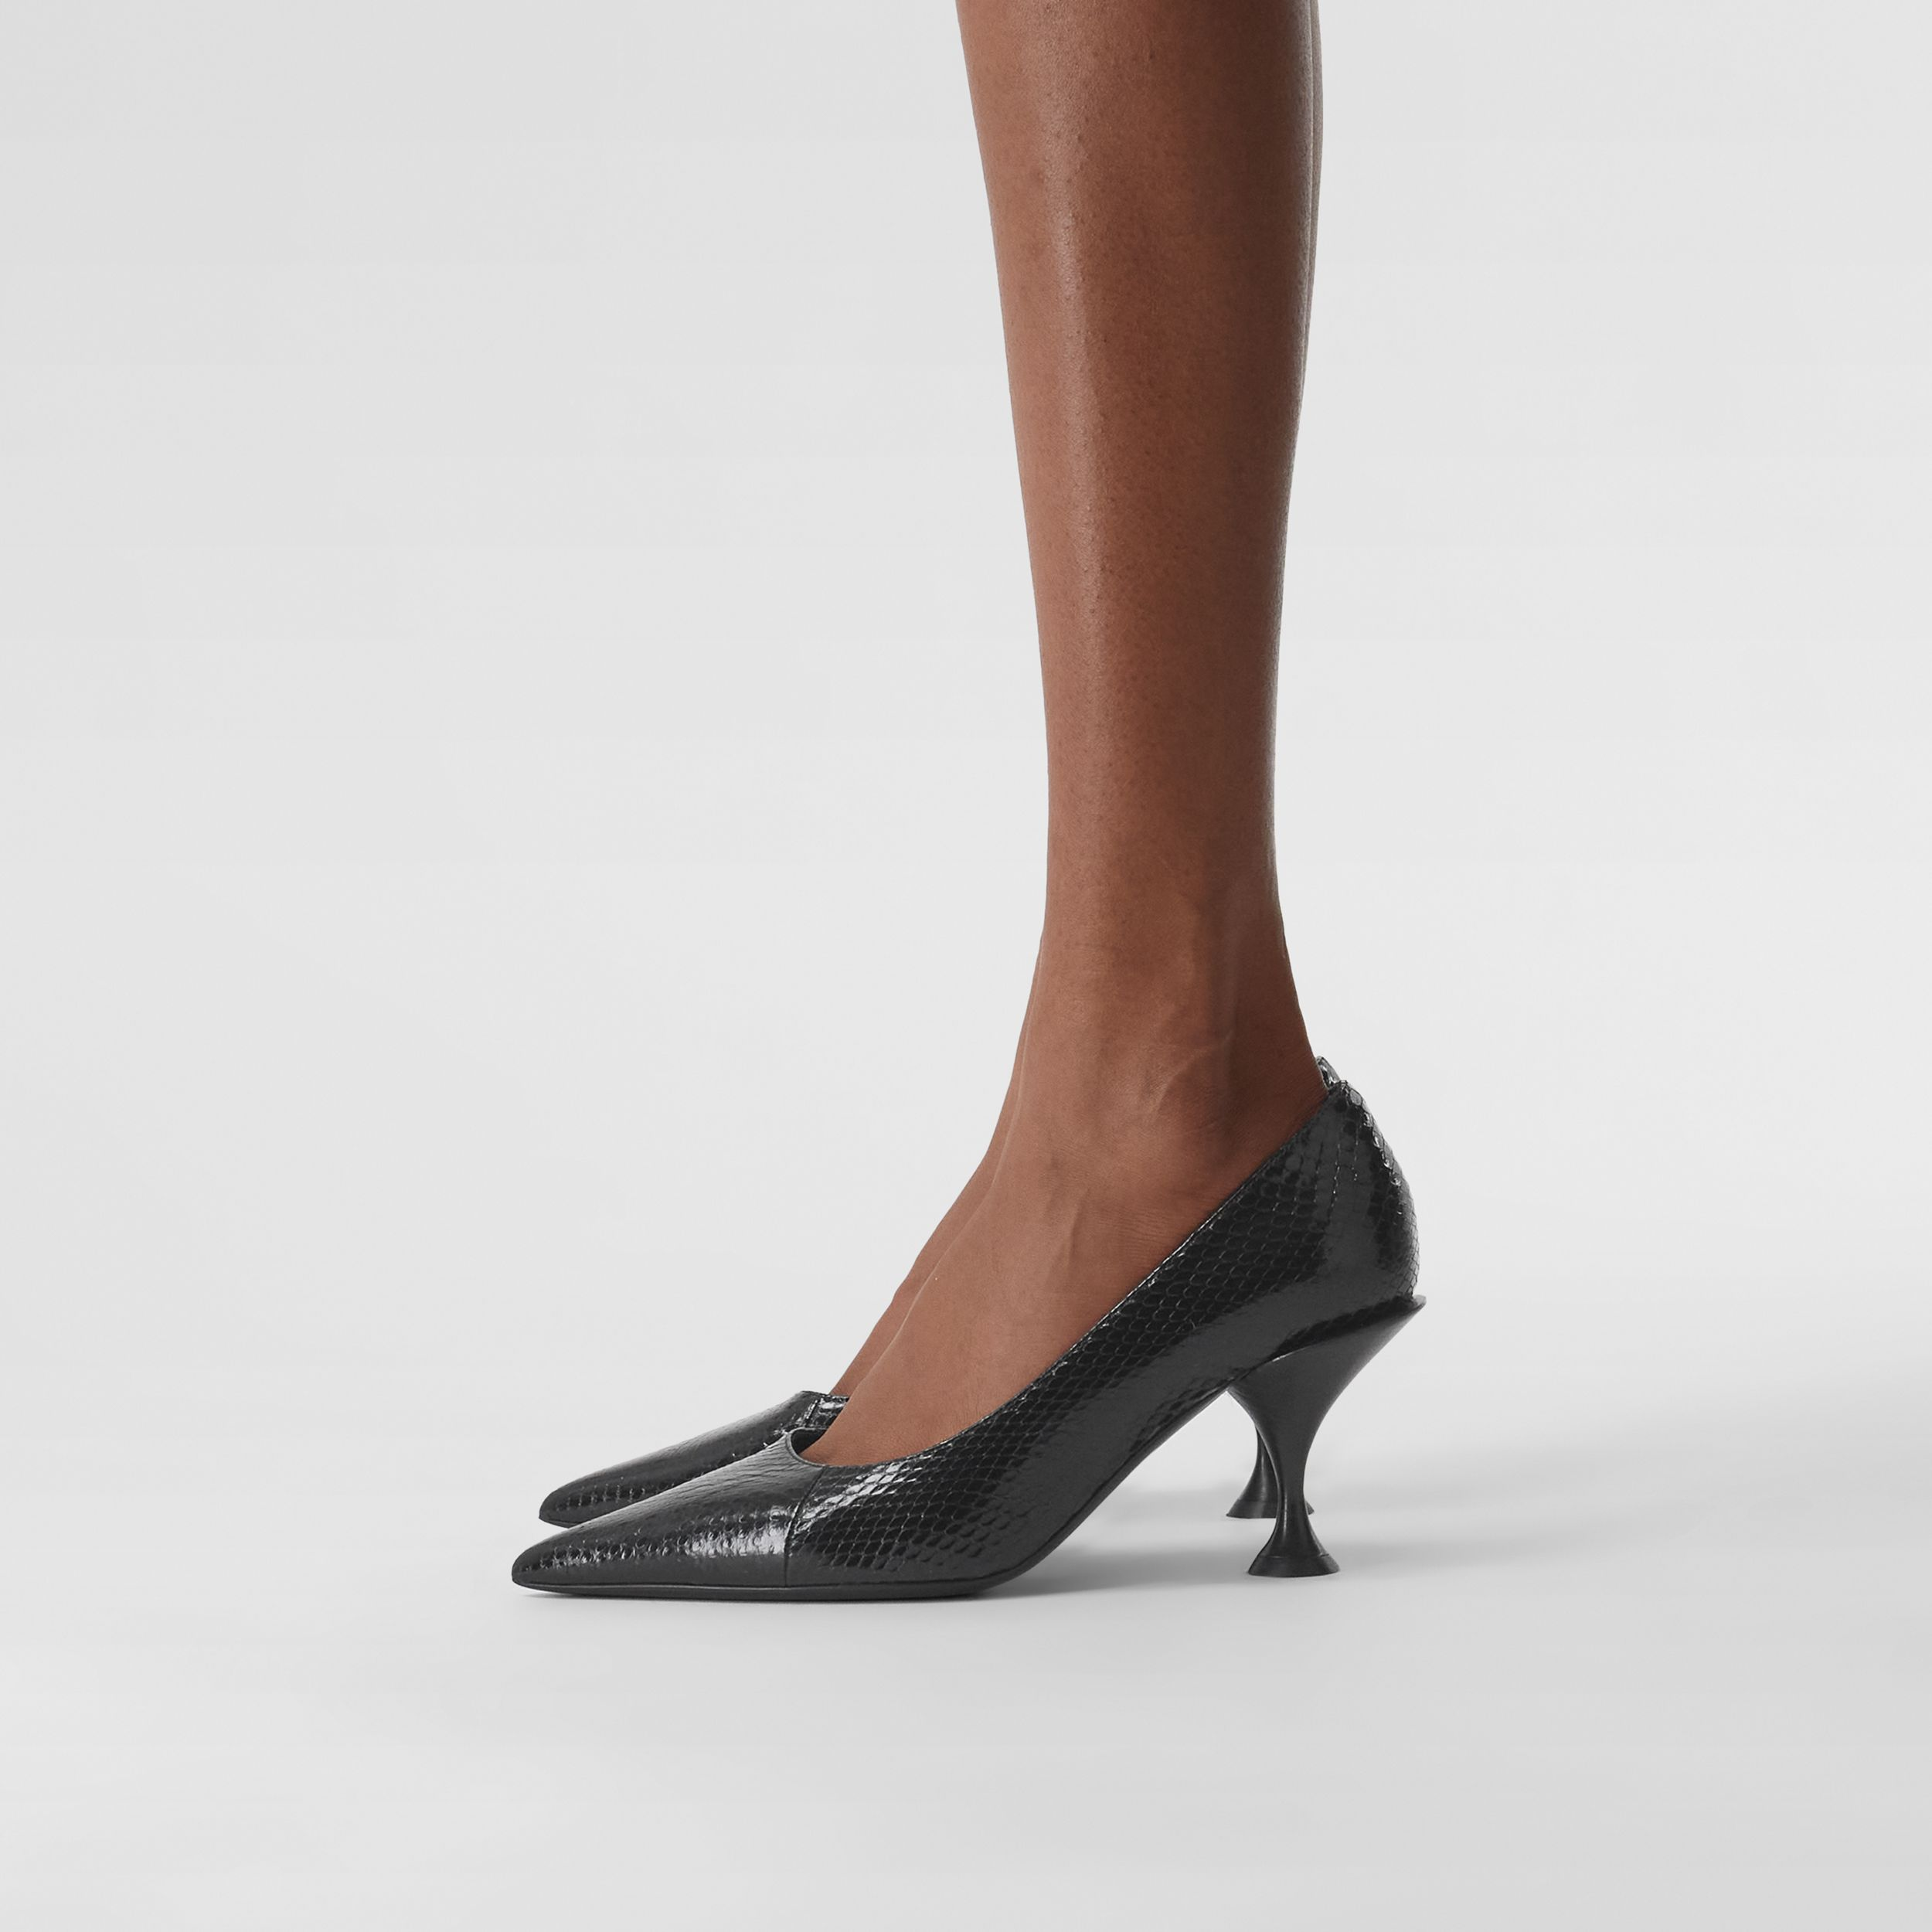 Snakeskin Point-toe Pumps in Black - Women | Burberry - 3